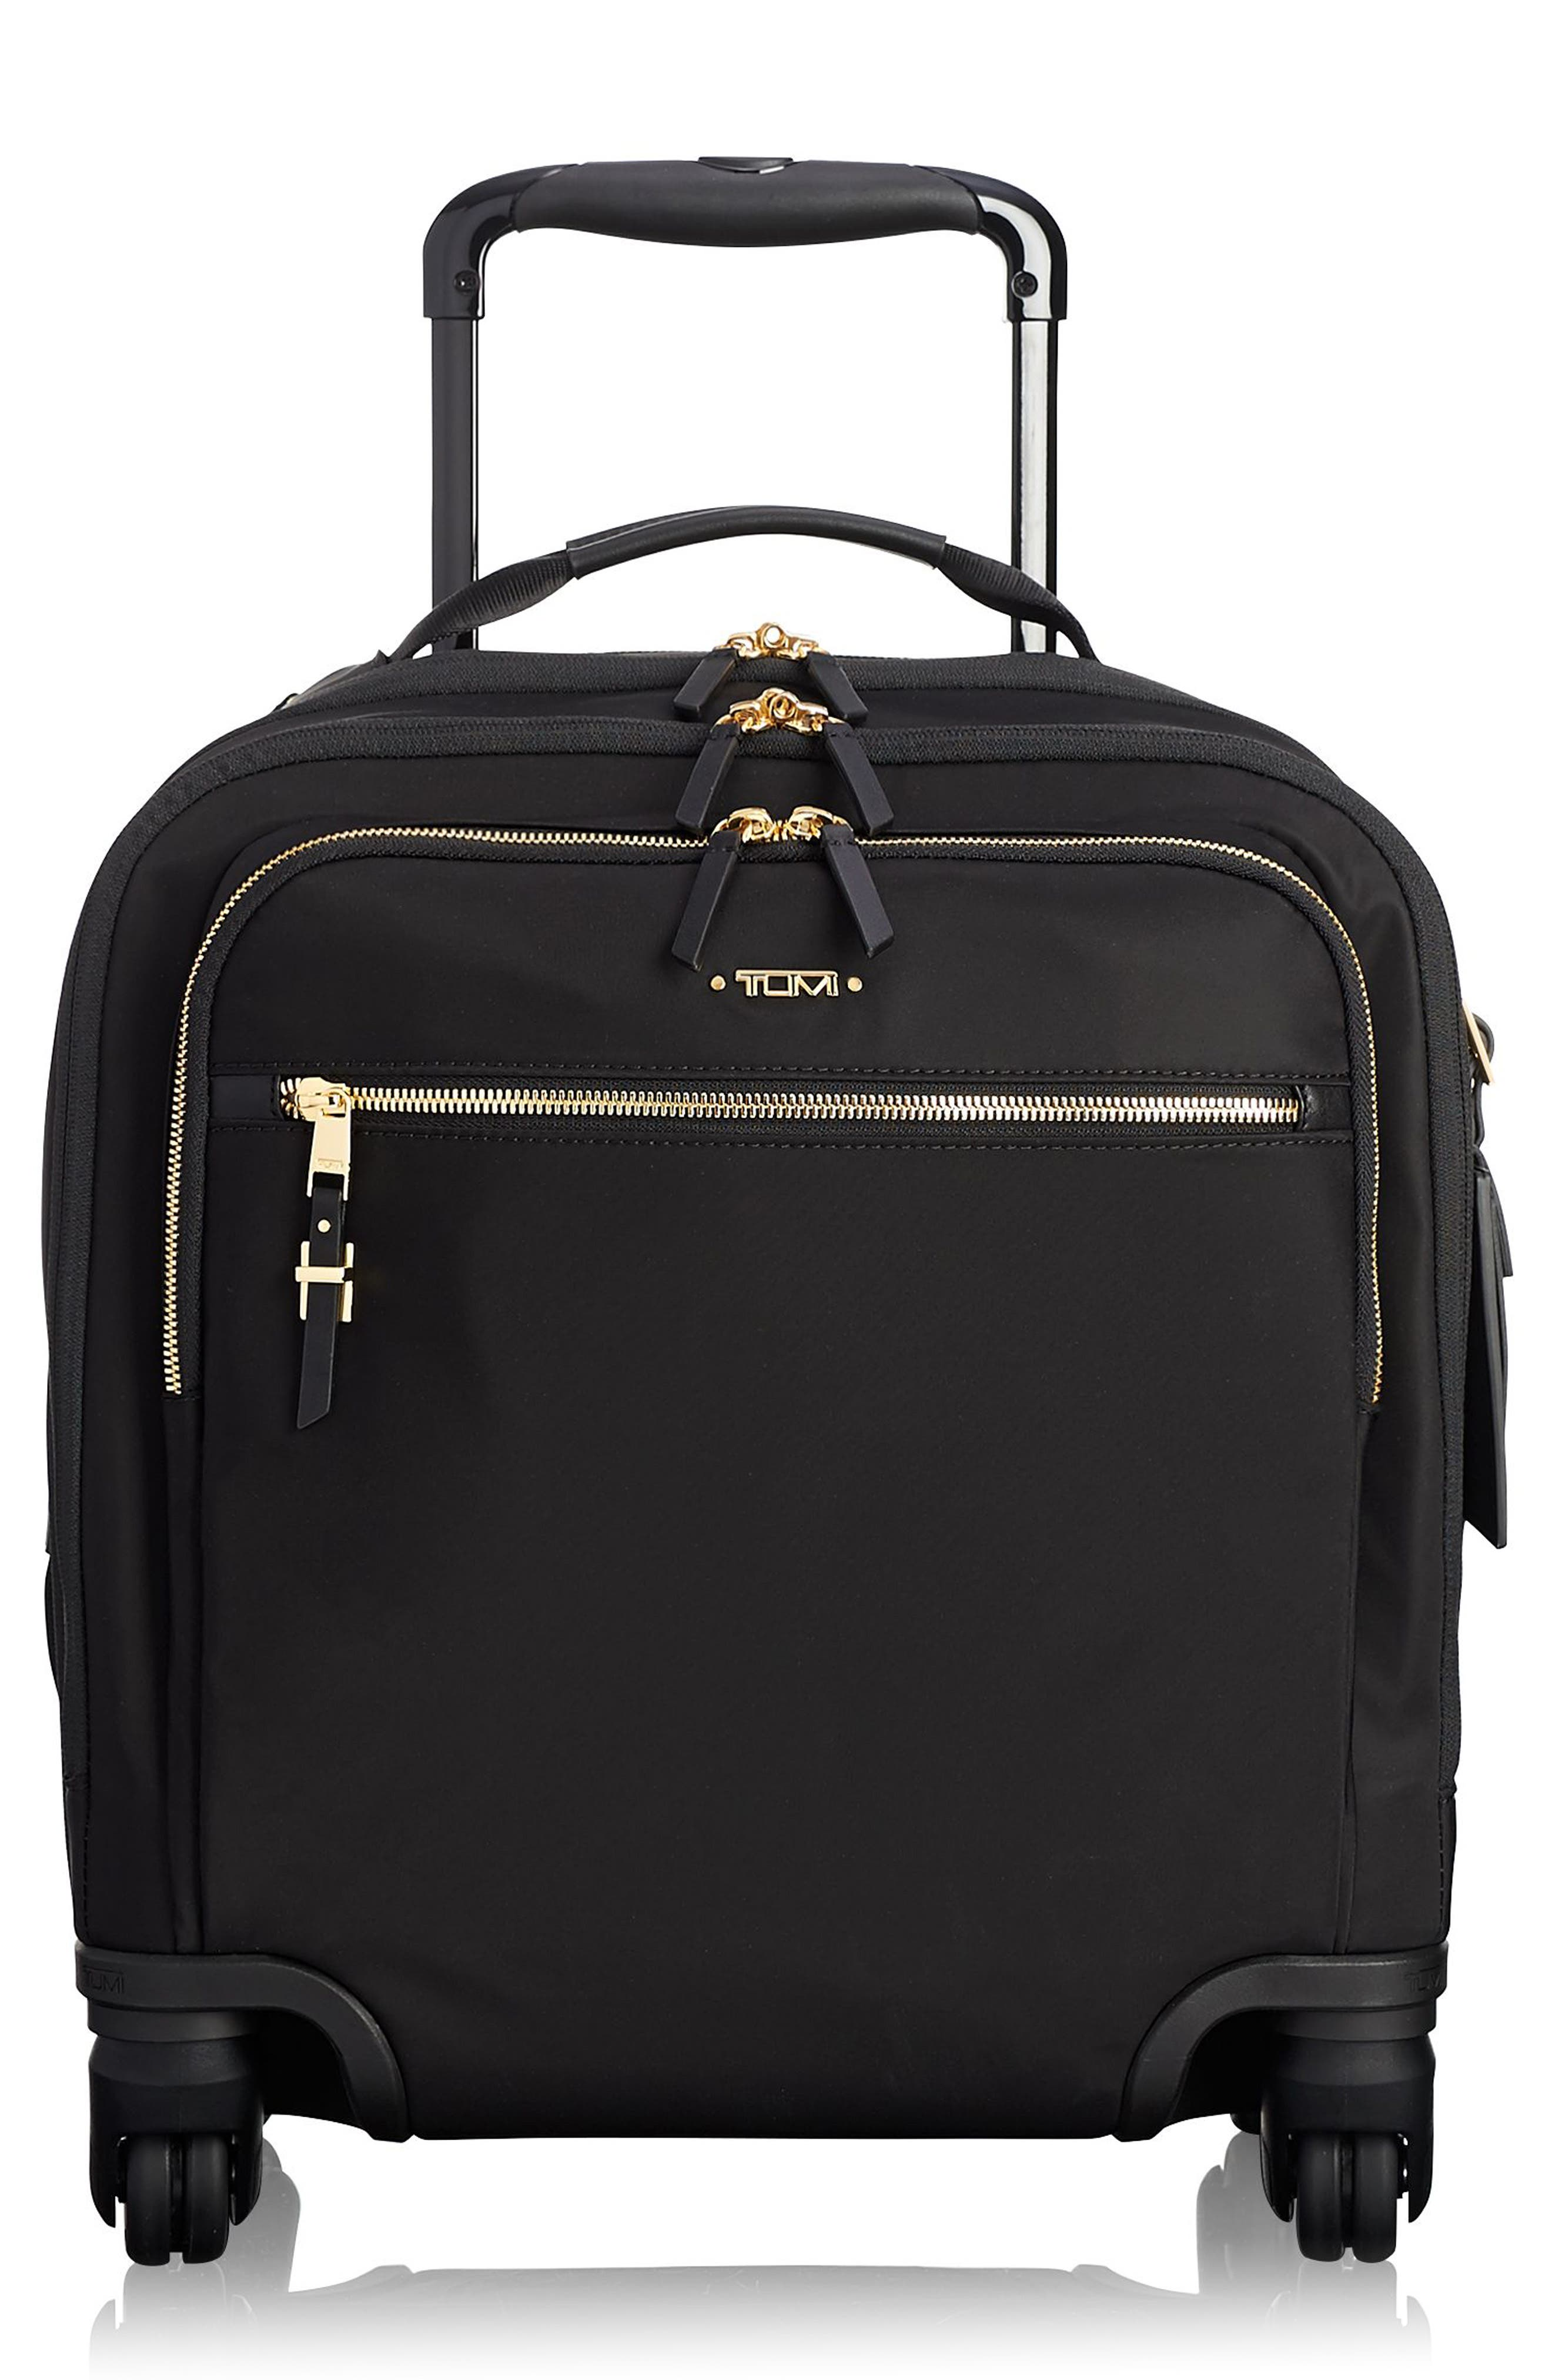 TUMI,                             Voyageur Osona 16-Inch Compact Carry-On,                             Main thumbnail 1, color,                             BLACK